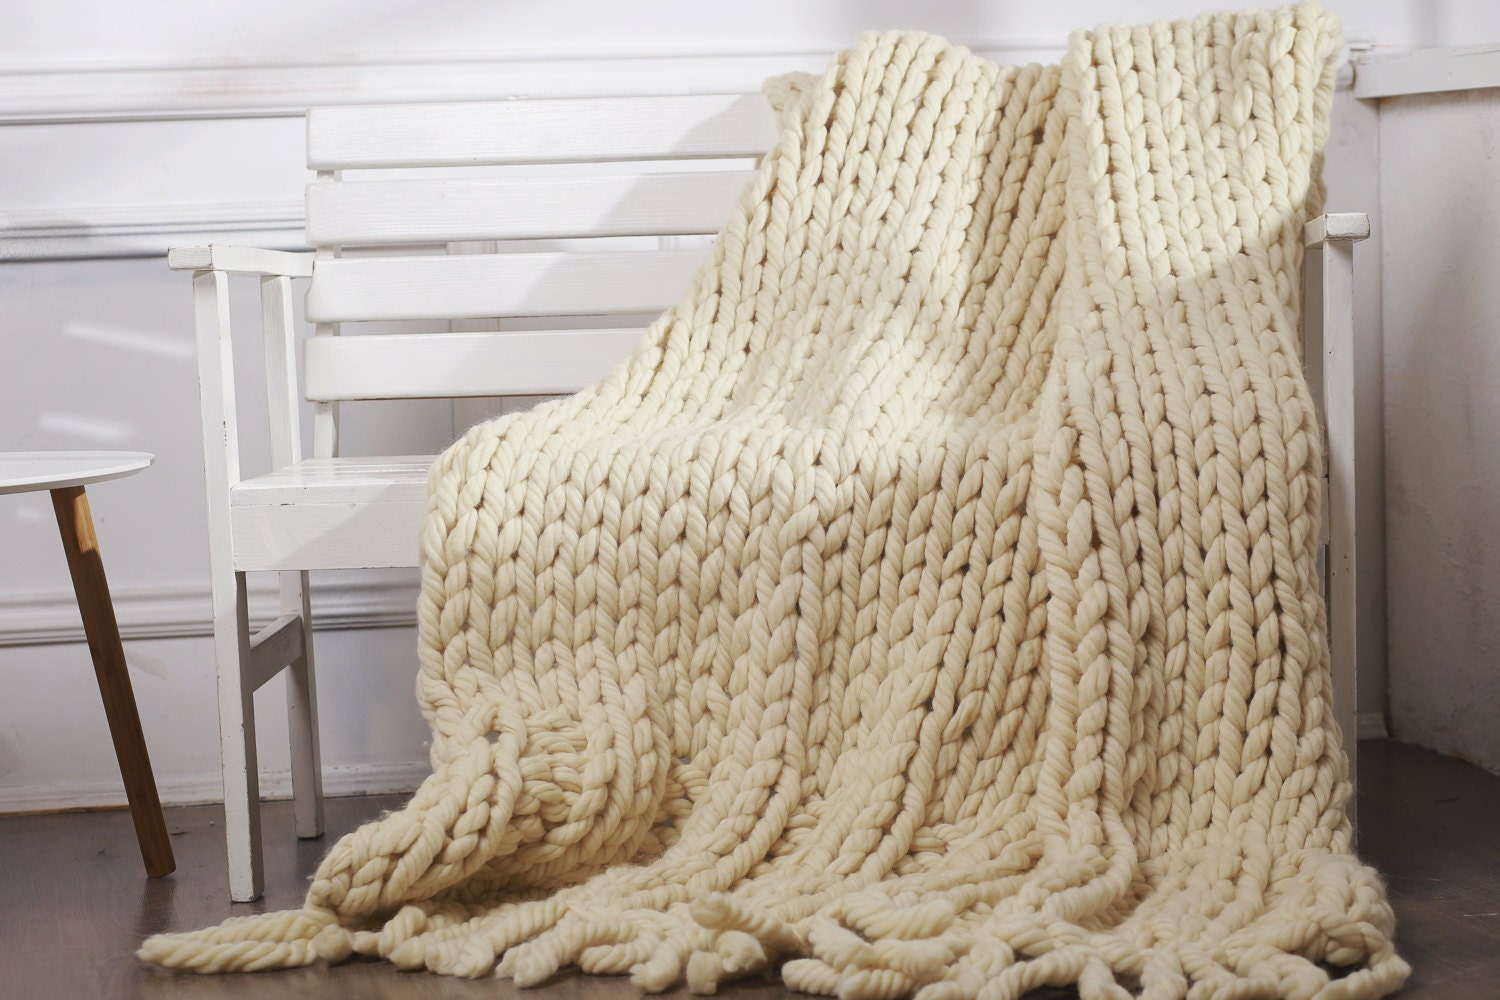 Knitting Wool Blanket : Chunky knit blanket super bulky by